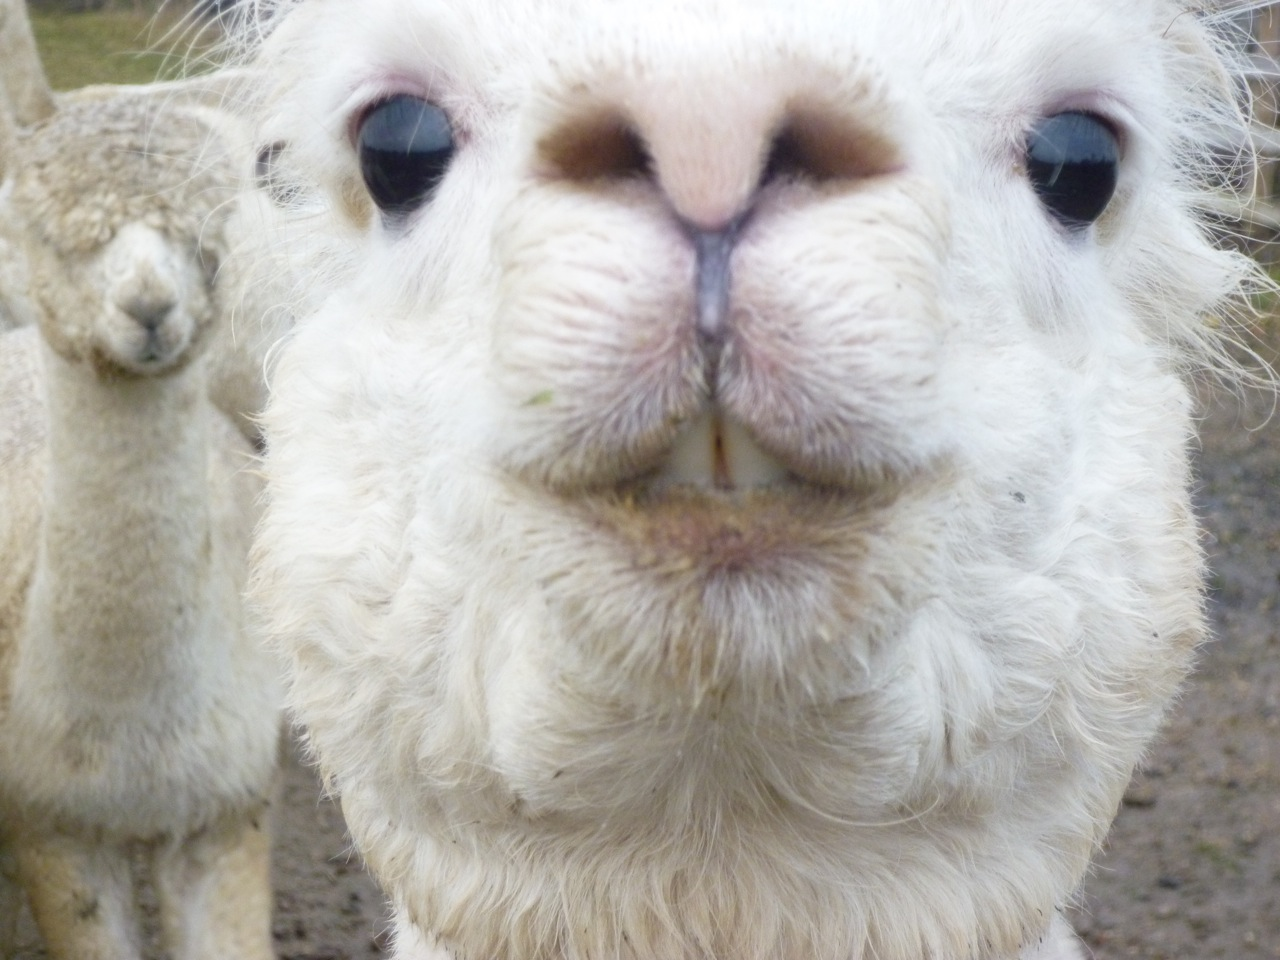 funny alpaca new nice pictures photos 2012 funny animals